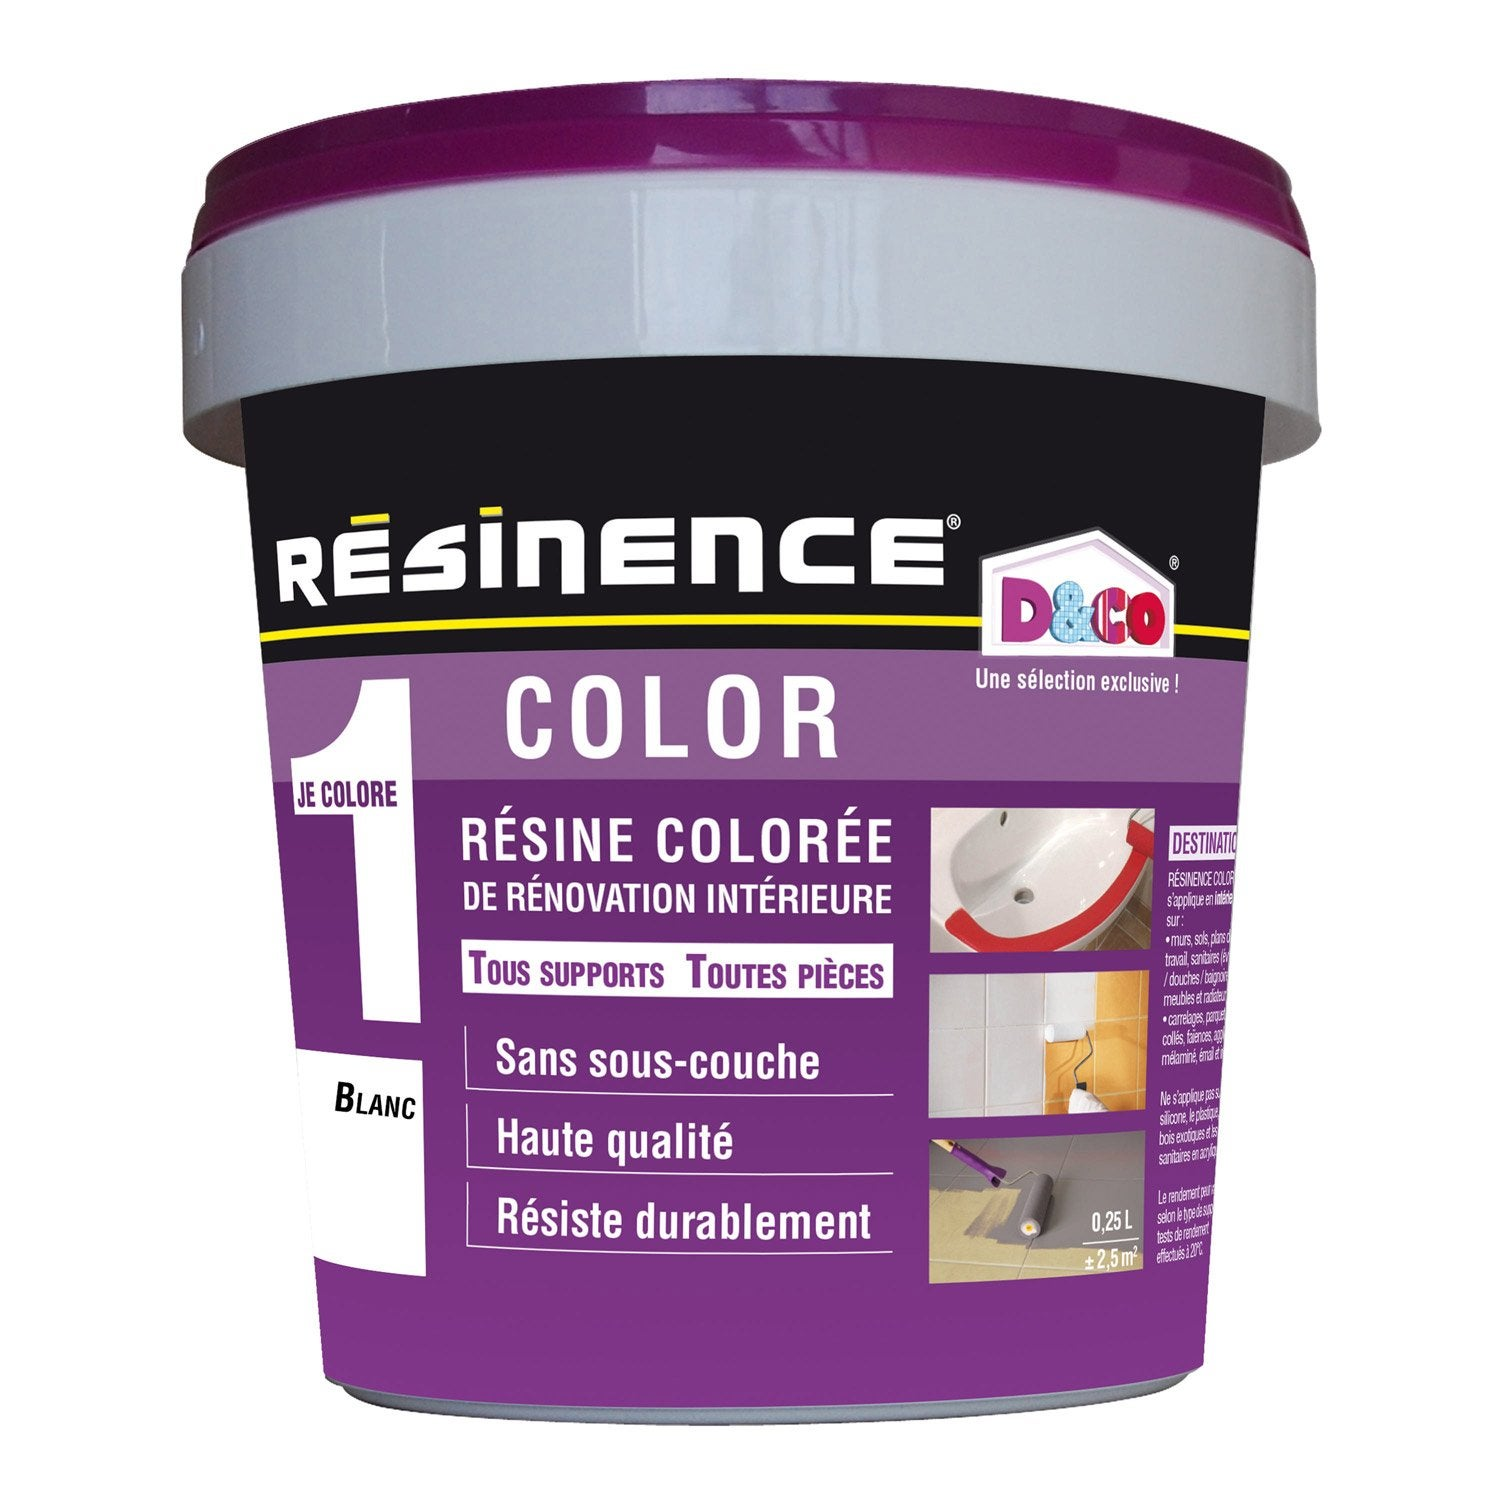 R Sine Color E Color Resinence Blanc 0 25 L Leroy Merlin